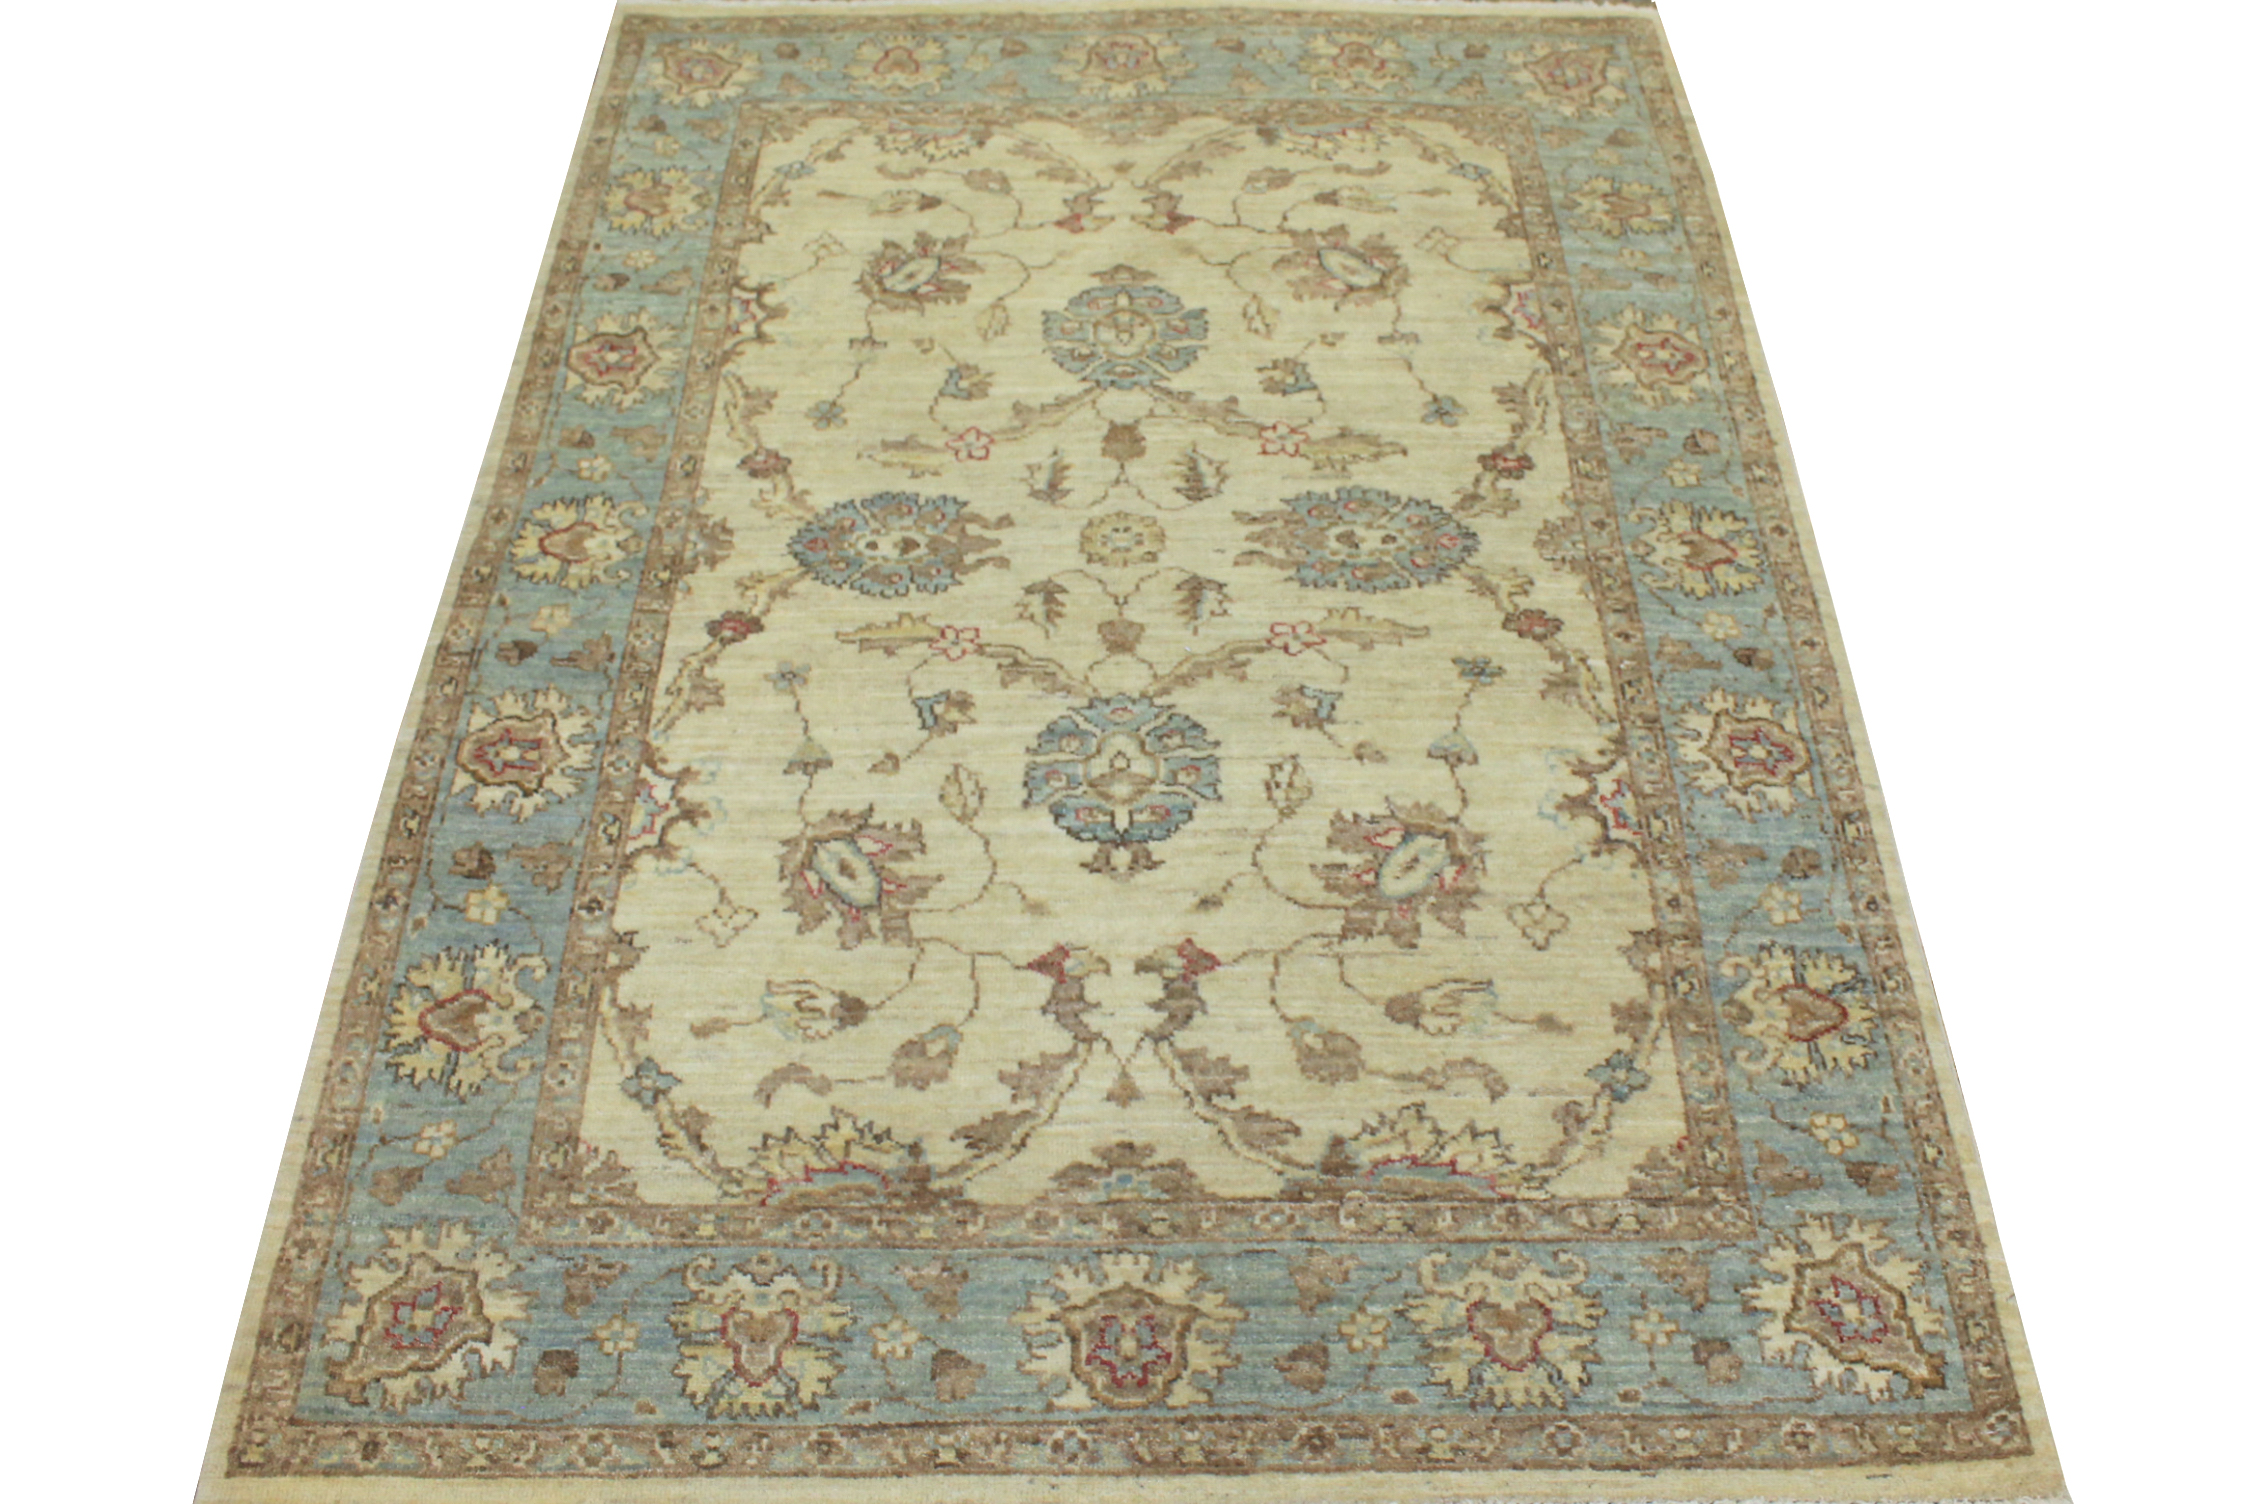 4x6 Peshawar Hand Knotted Wool Area Rug - MR12752